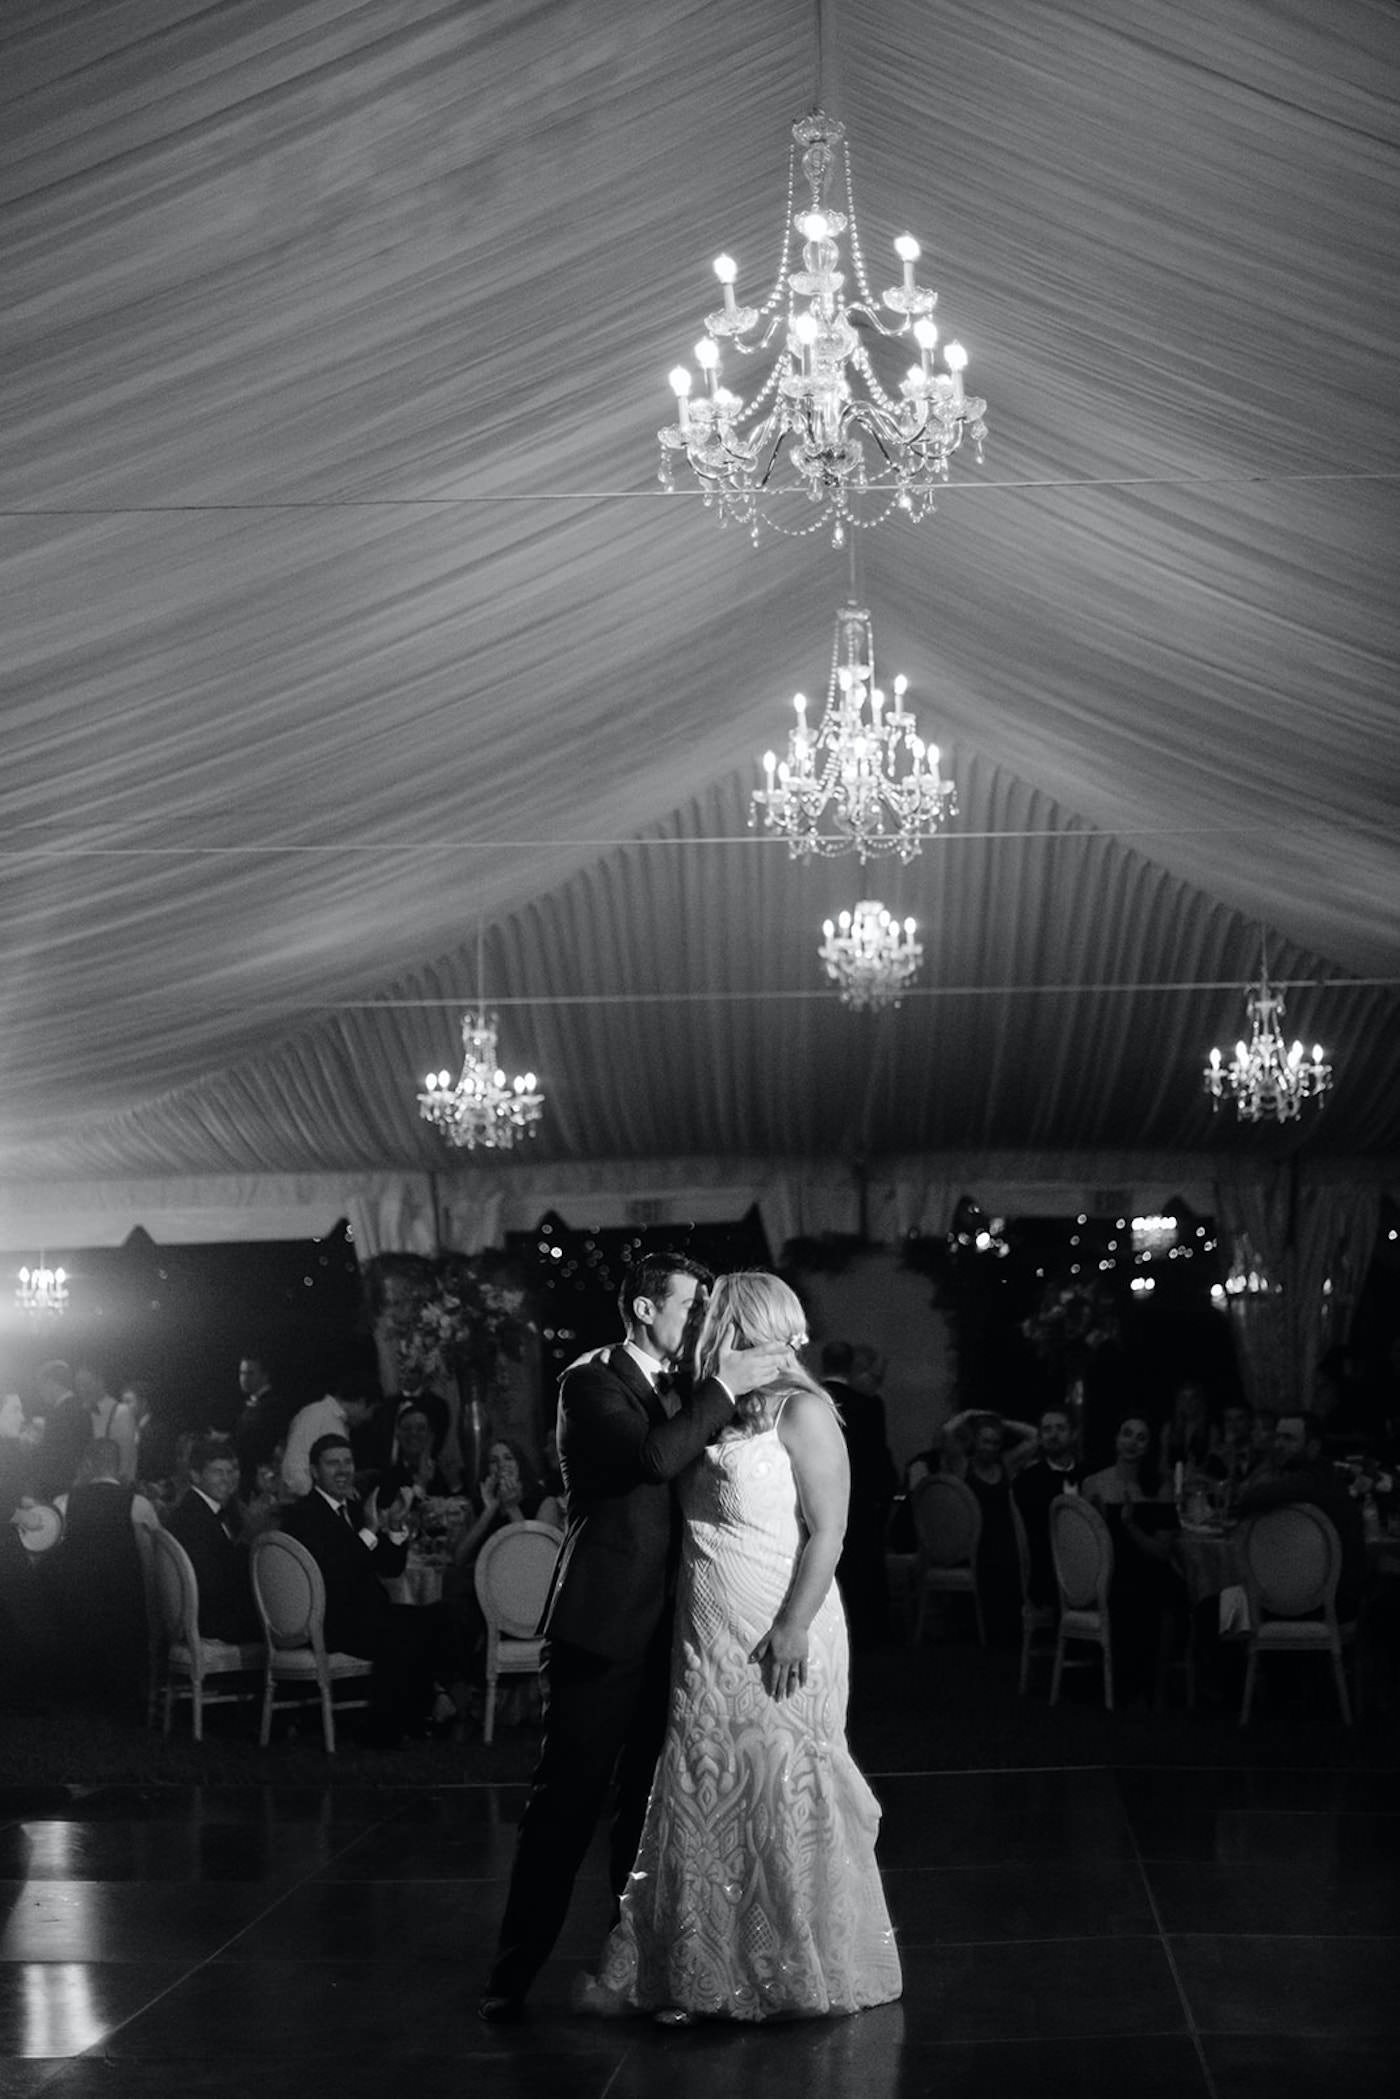 Sarasota Bride and Groom First Dance under Crystal Chandeliers of Tented Outdoor Reception, Black and White   Florida Wedding Planner NK Weddings